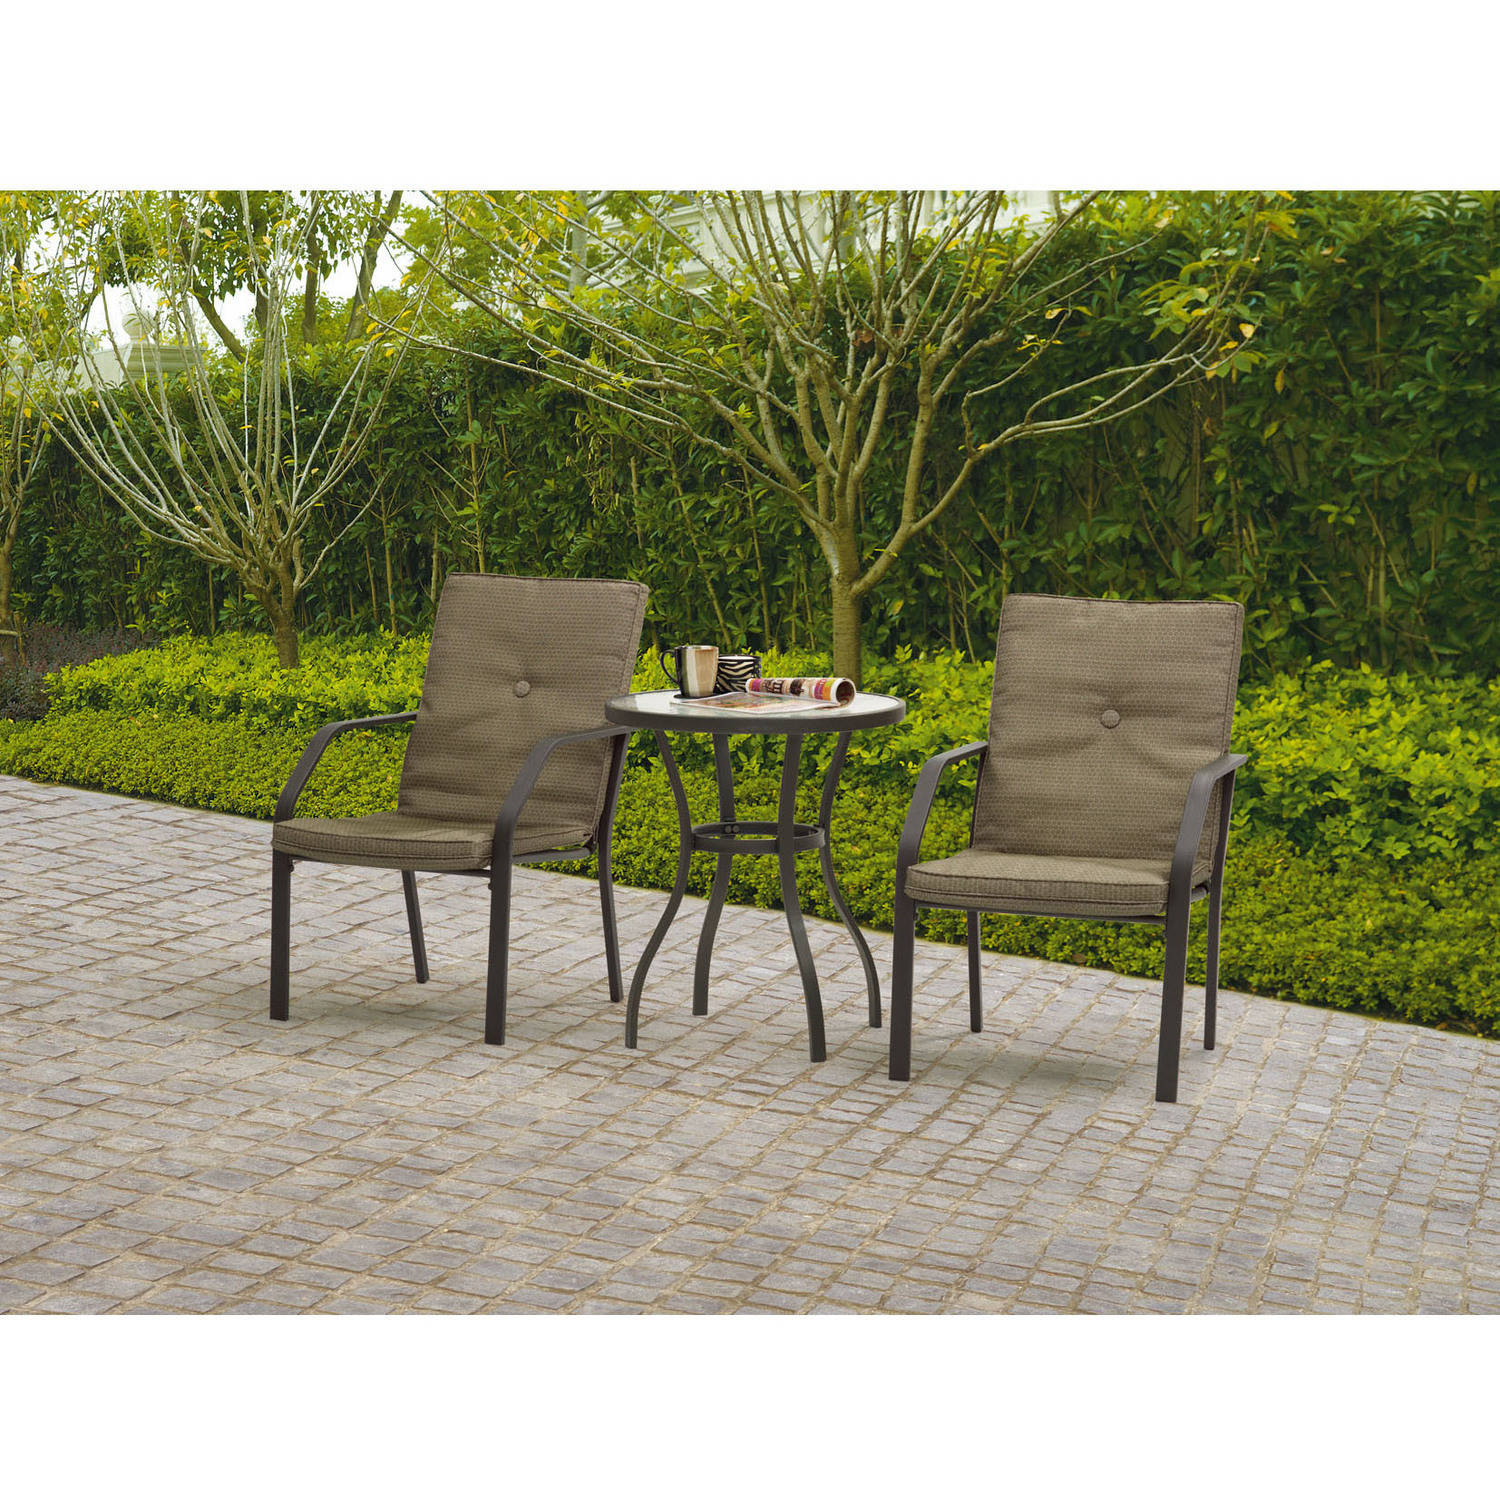 Mainstays Spring Creek 3 Piece Patio Bistro Set Tan Walmart Com